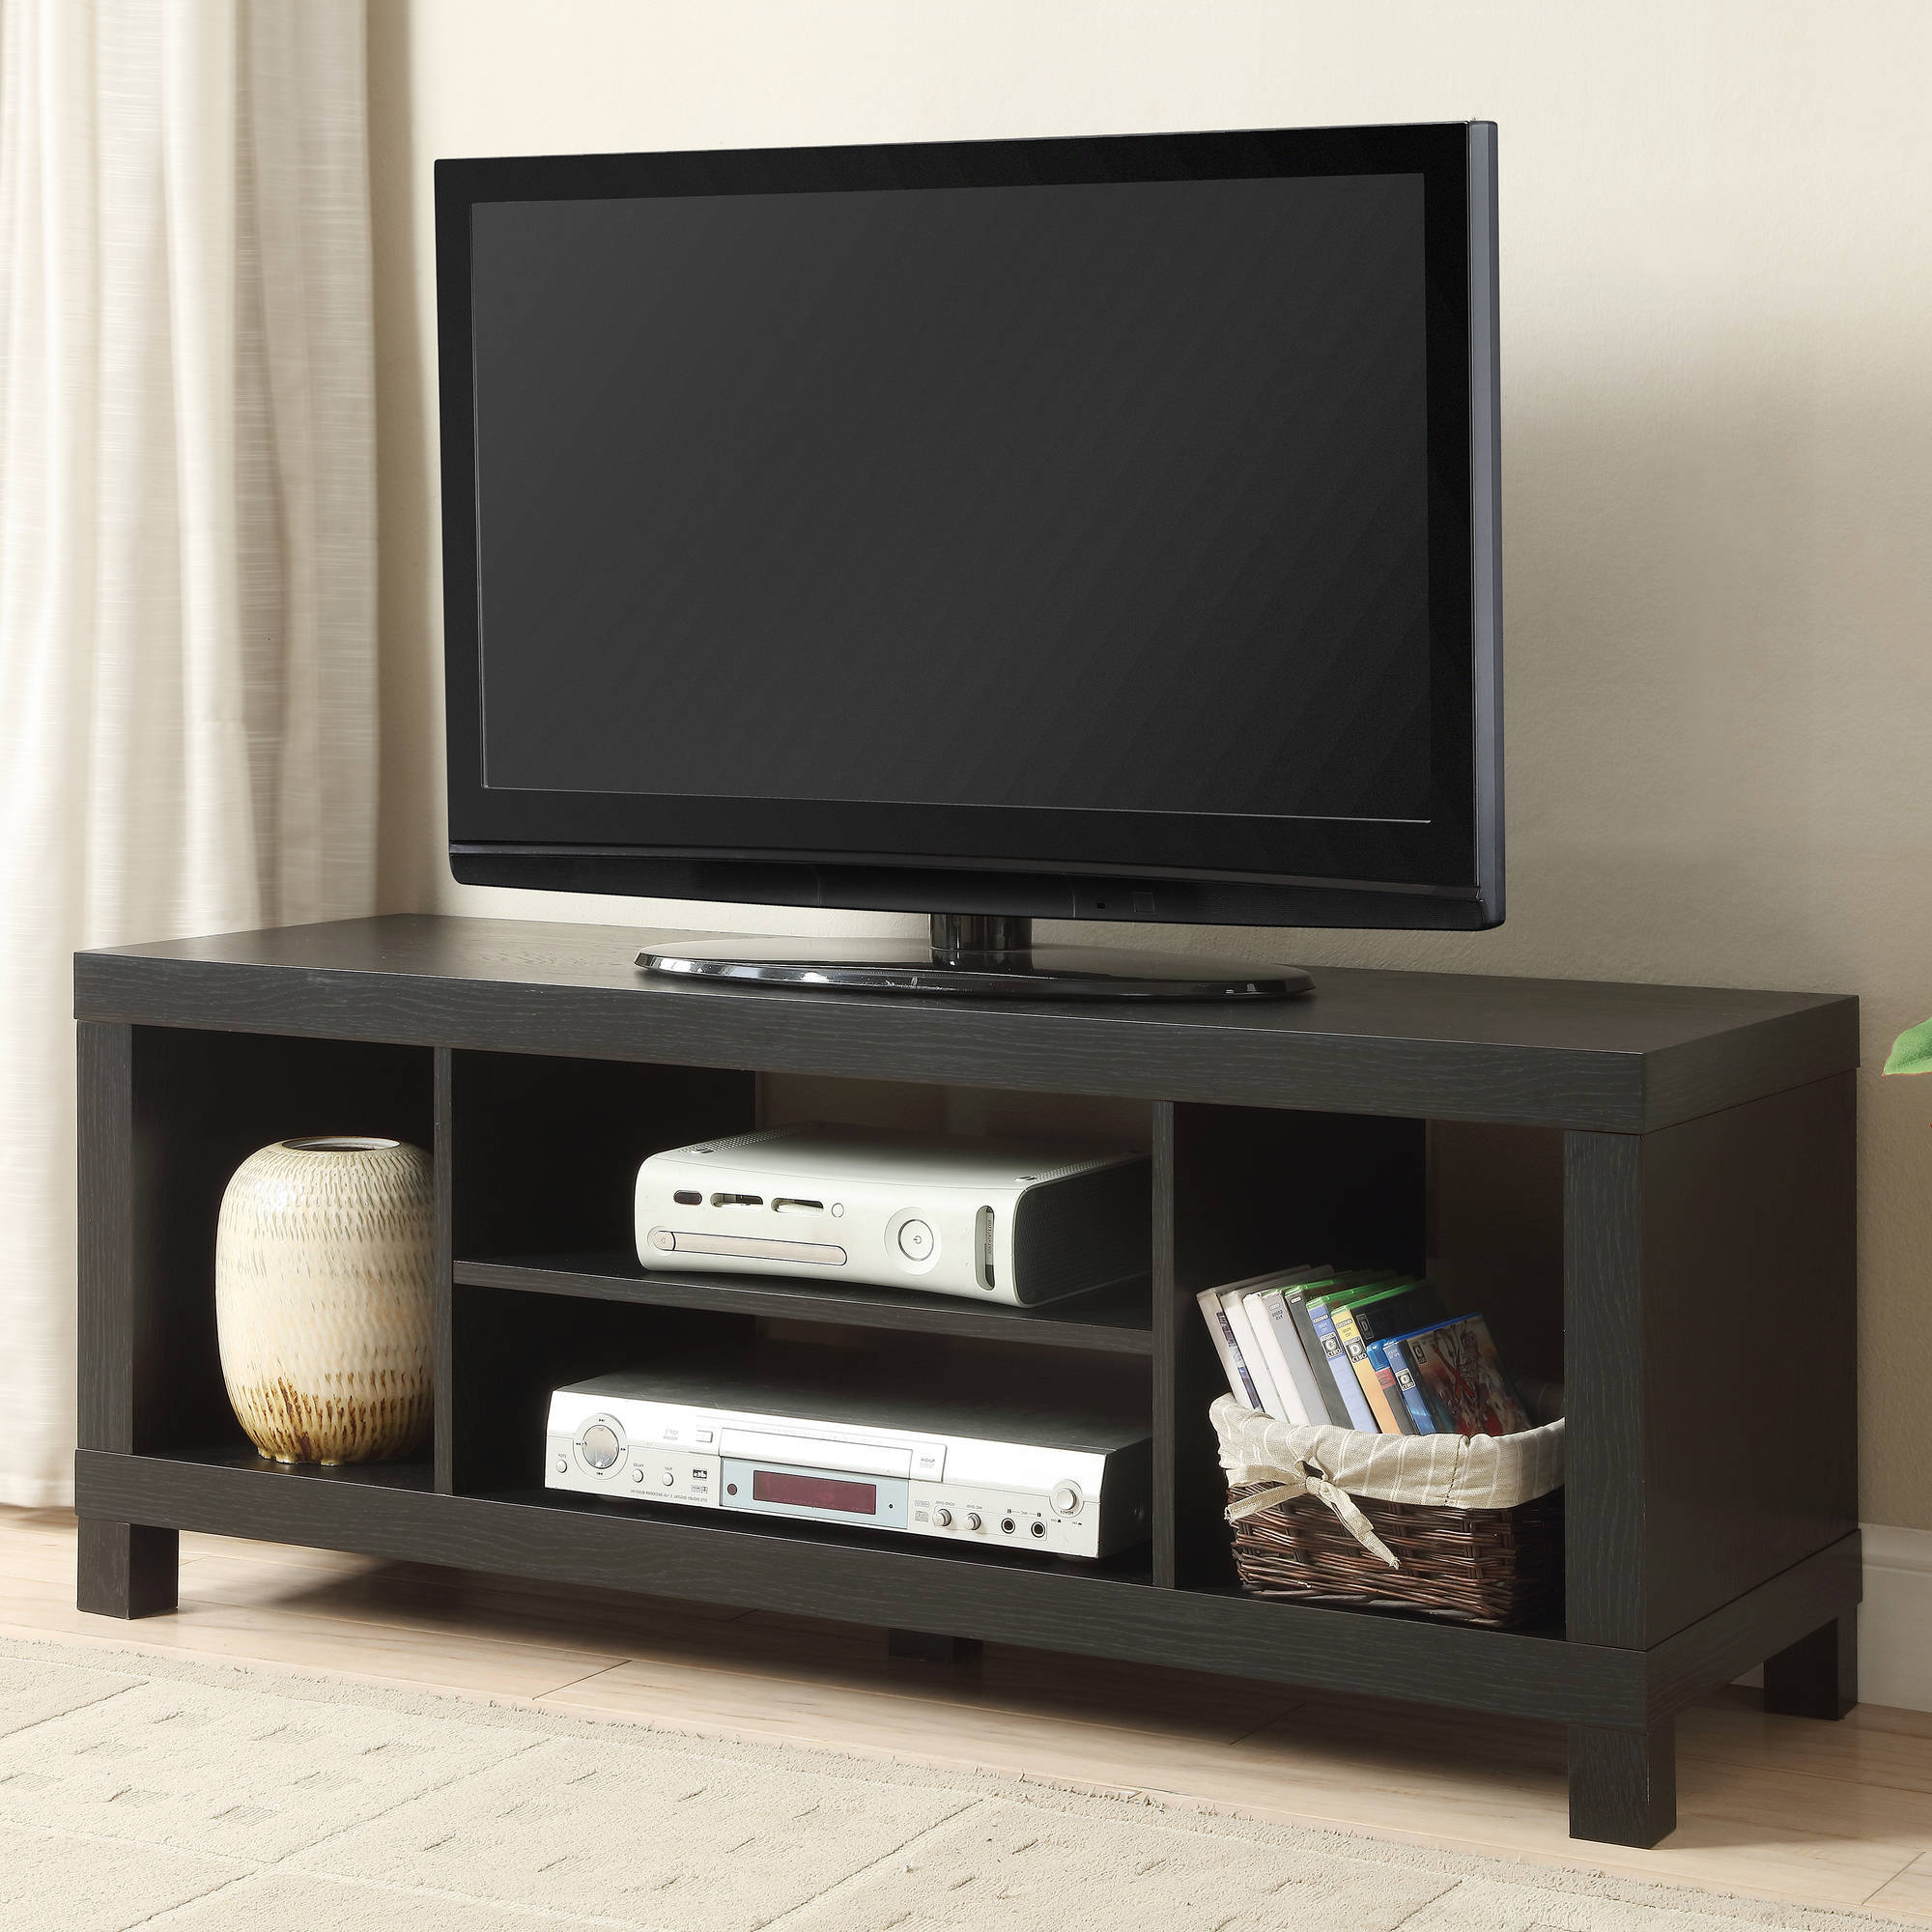 """Mainstays Tv Stand For Tvs Up To 42"""", Multiple Colors – Walmart Intended For Well Known Tv With Stands (View 10 of 20)"""